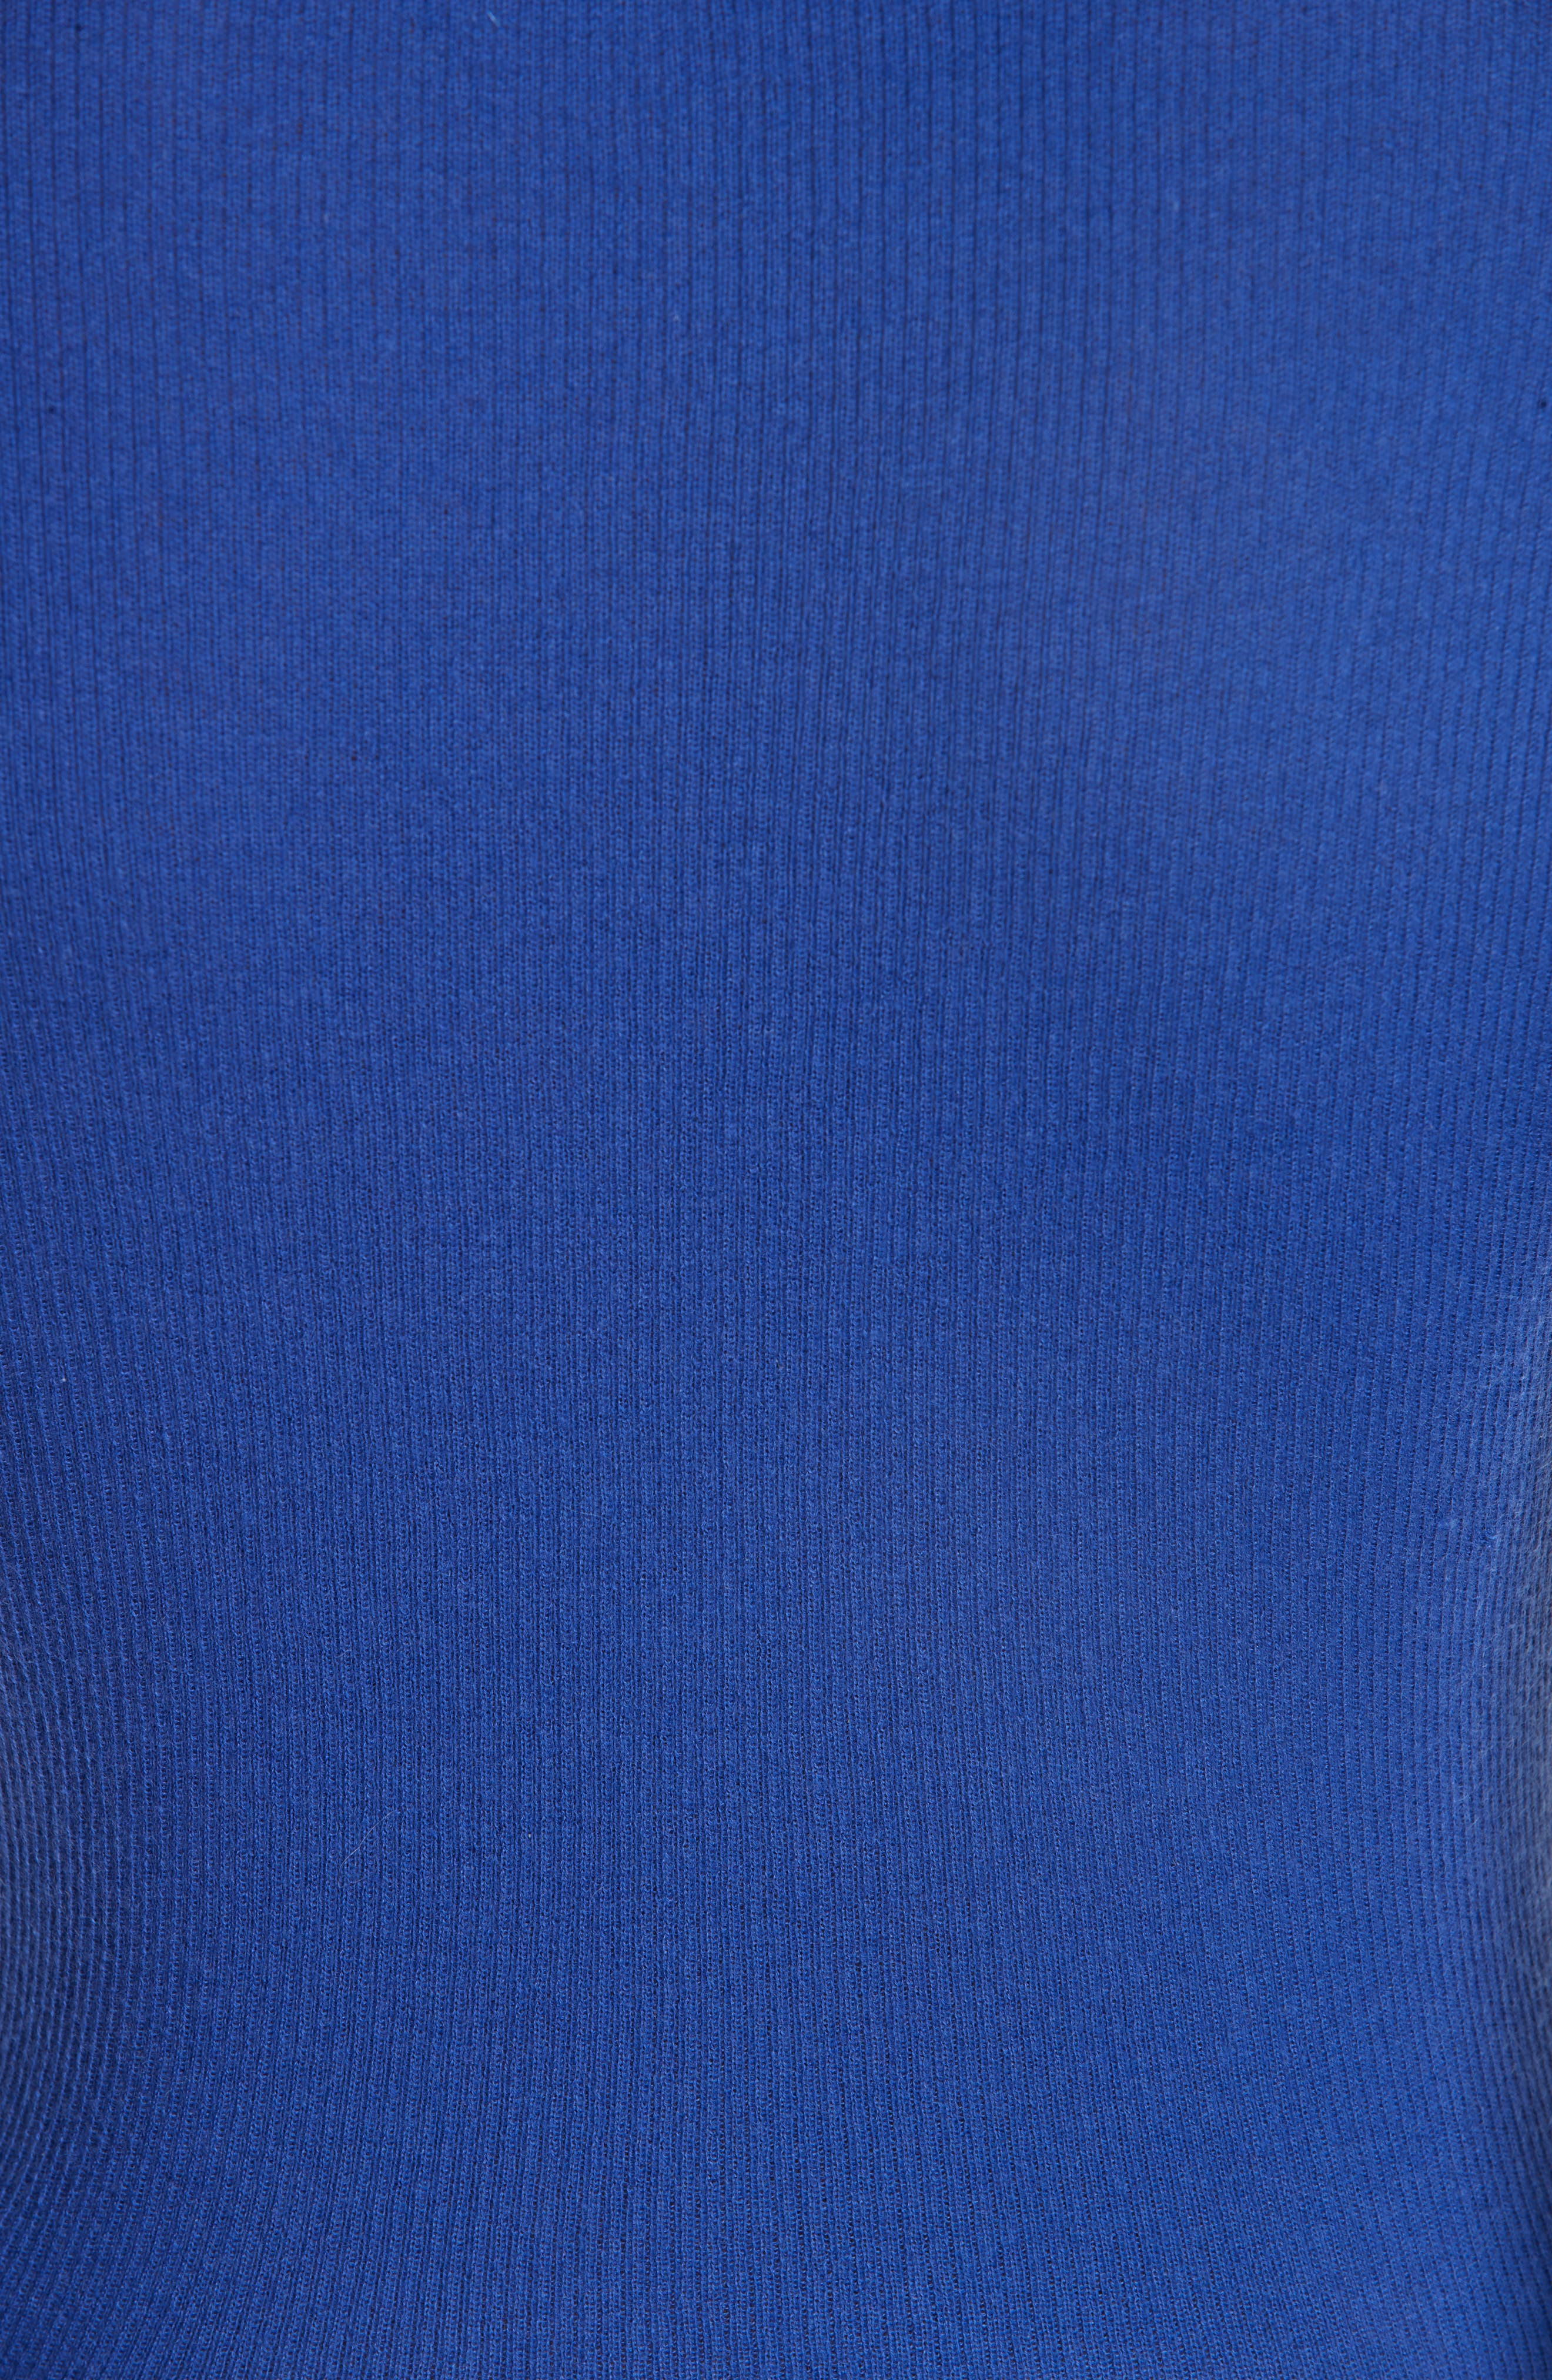 Ribbed Crewneck Sweater,                             Alternate thumbnail 6, color,                             LAPIS